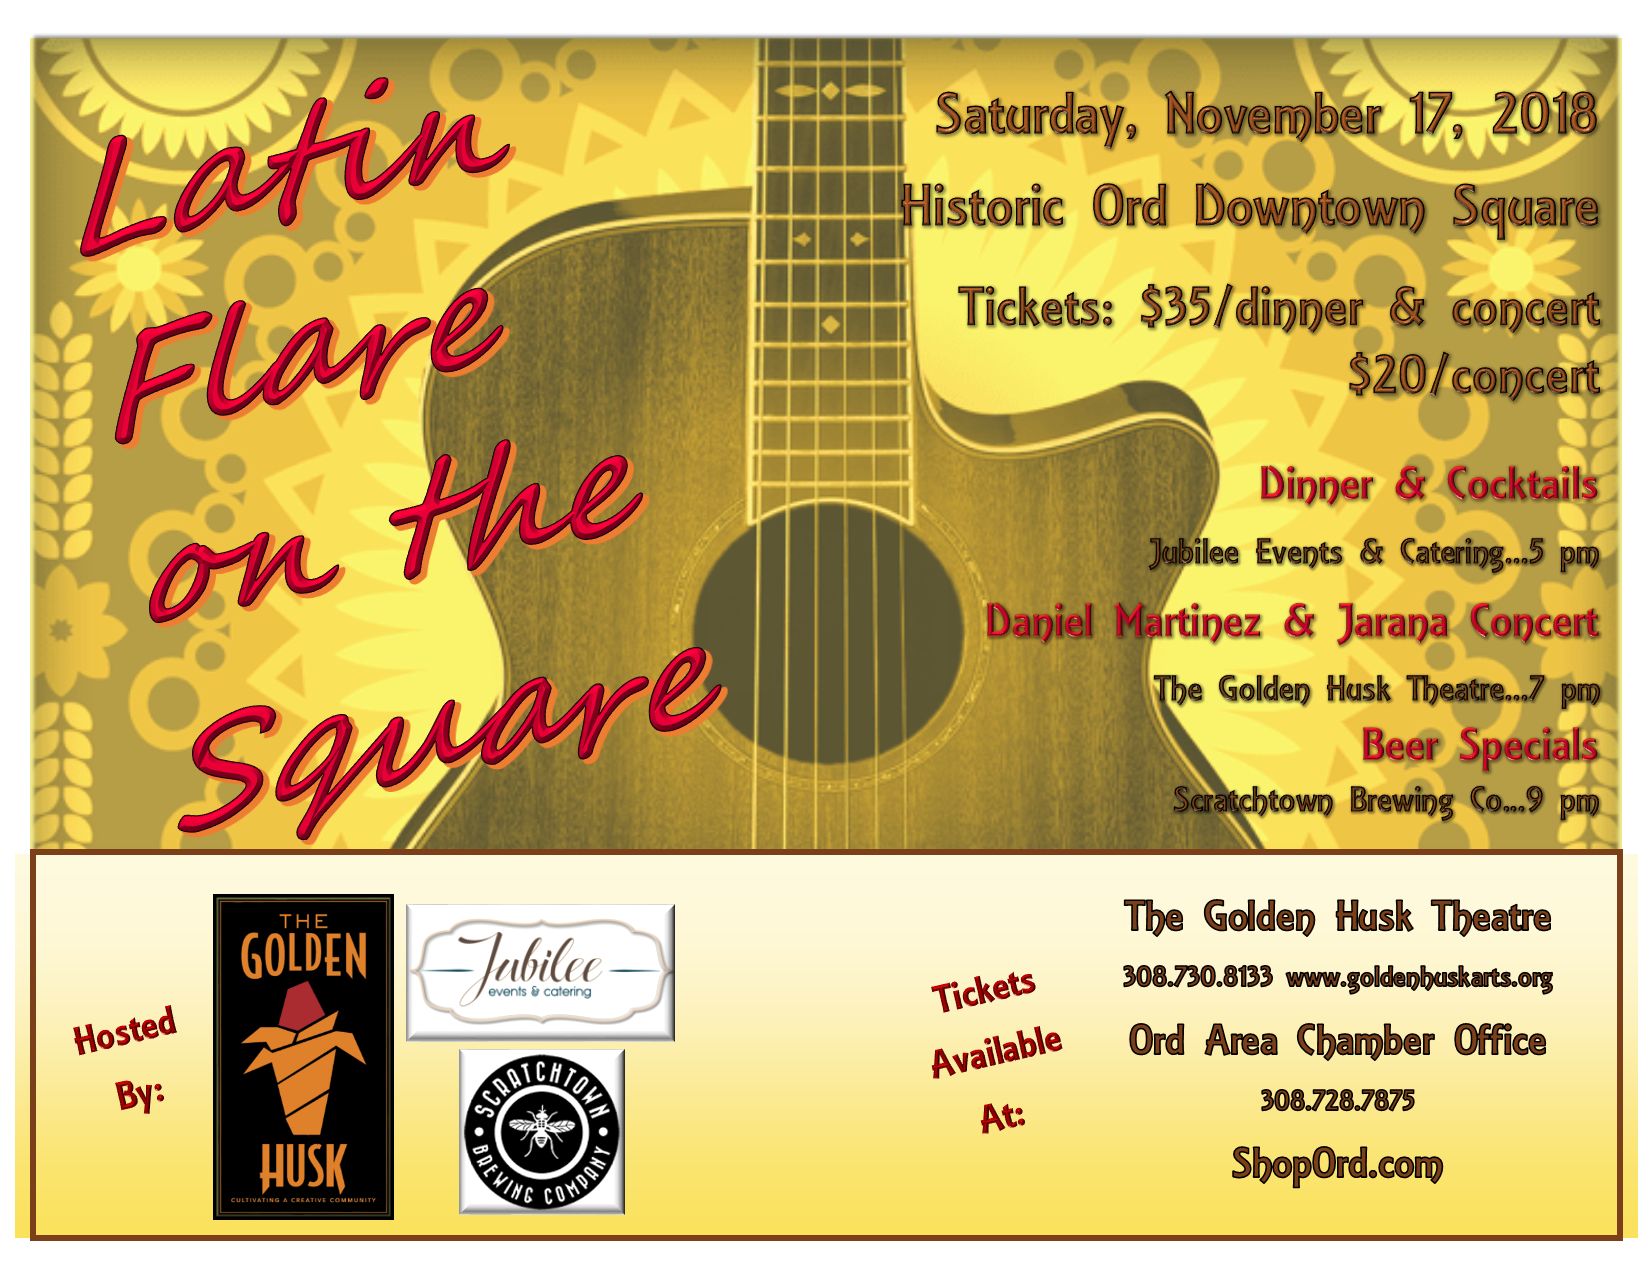 Latin Flare on the Square Tickets